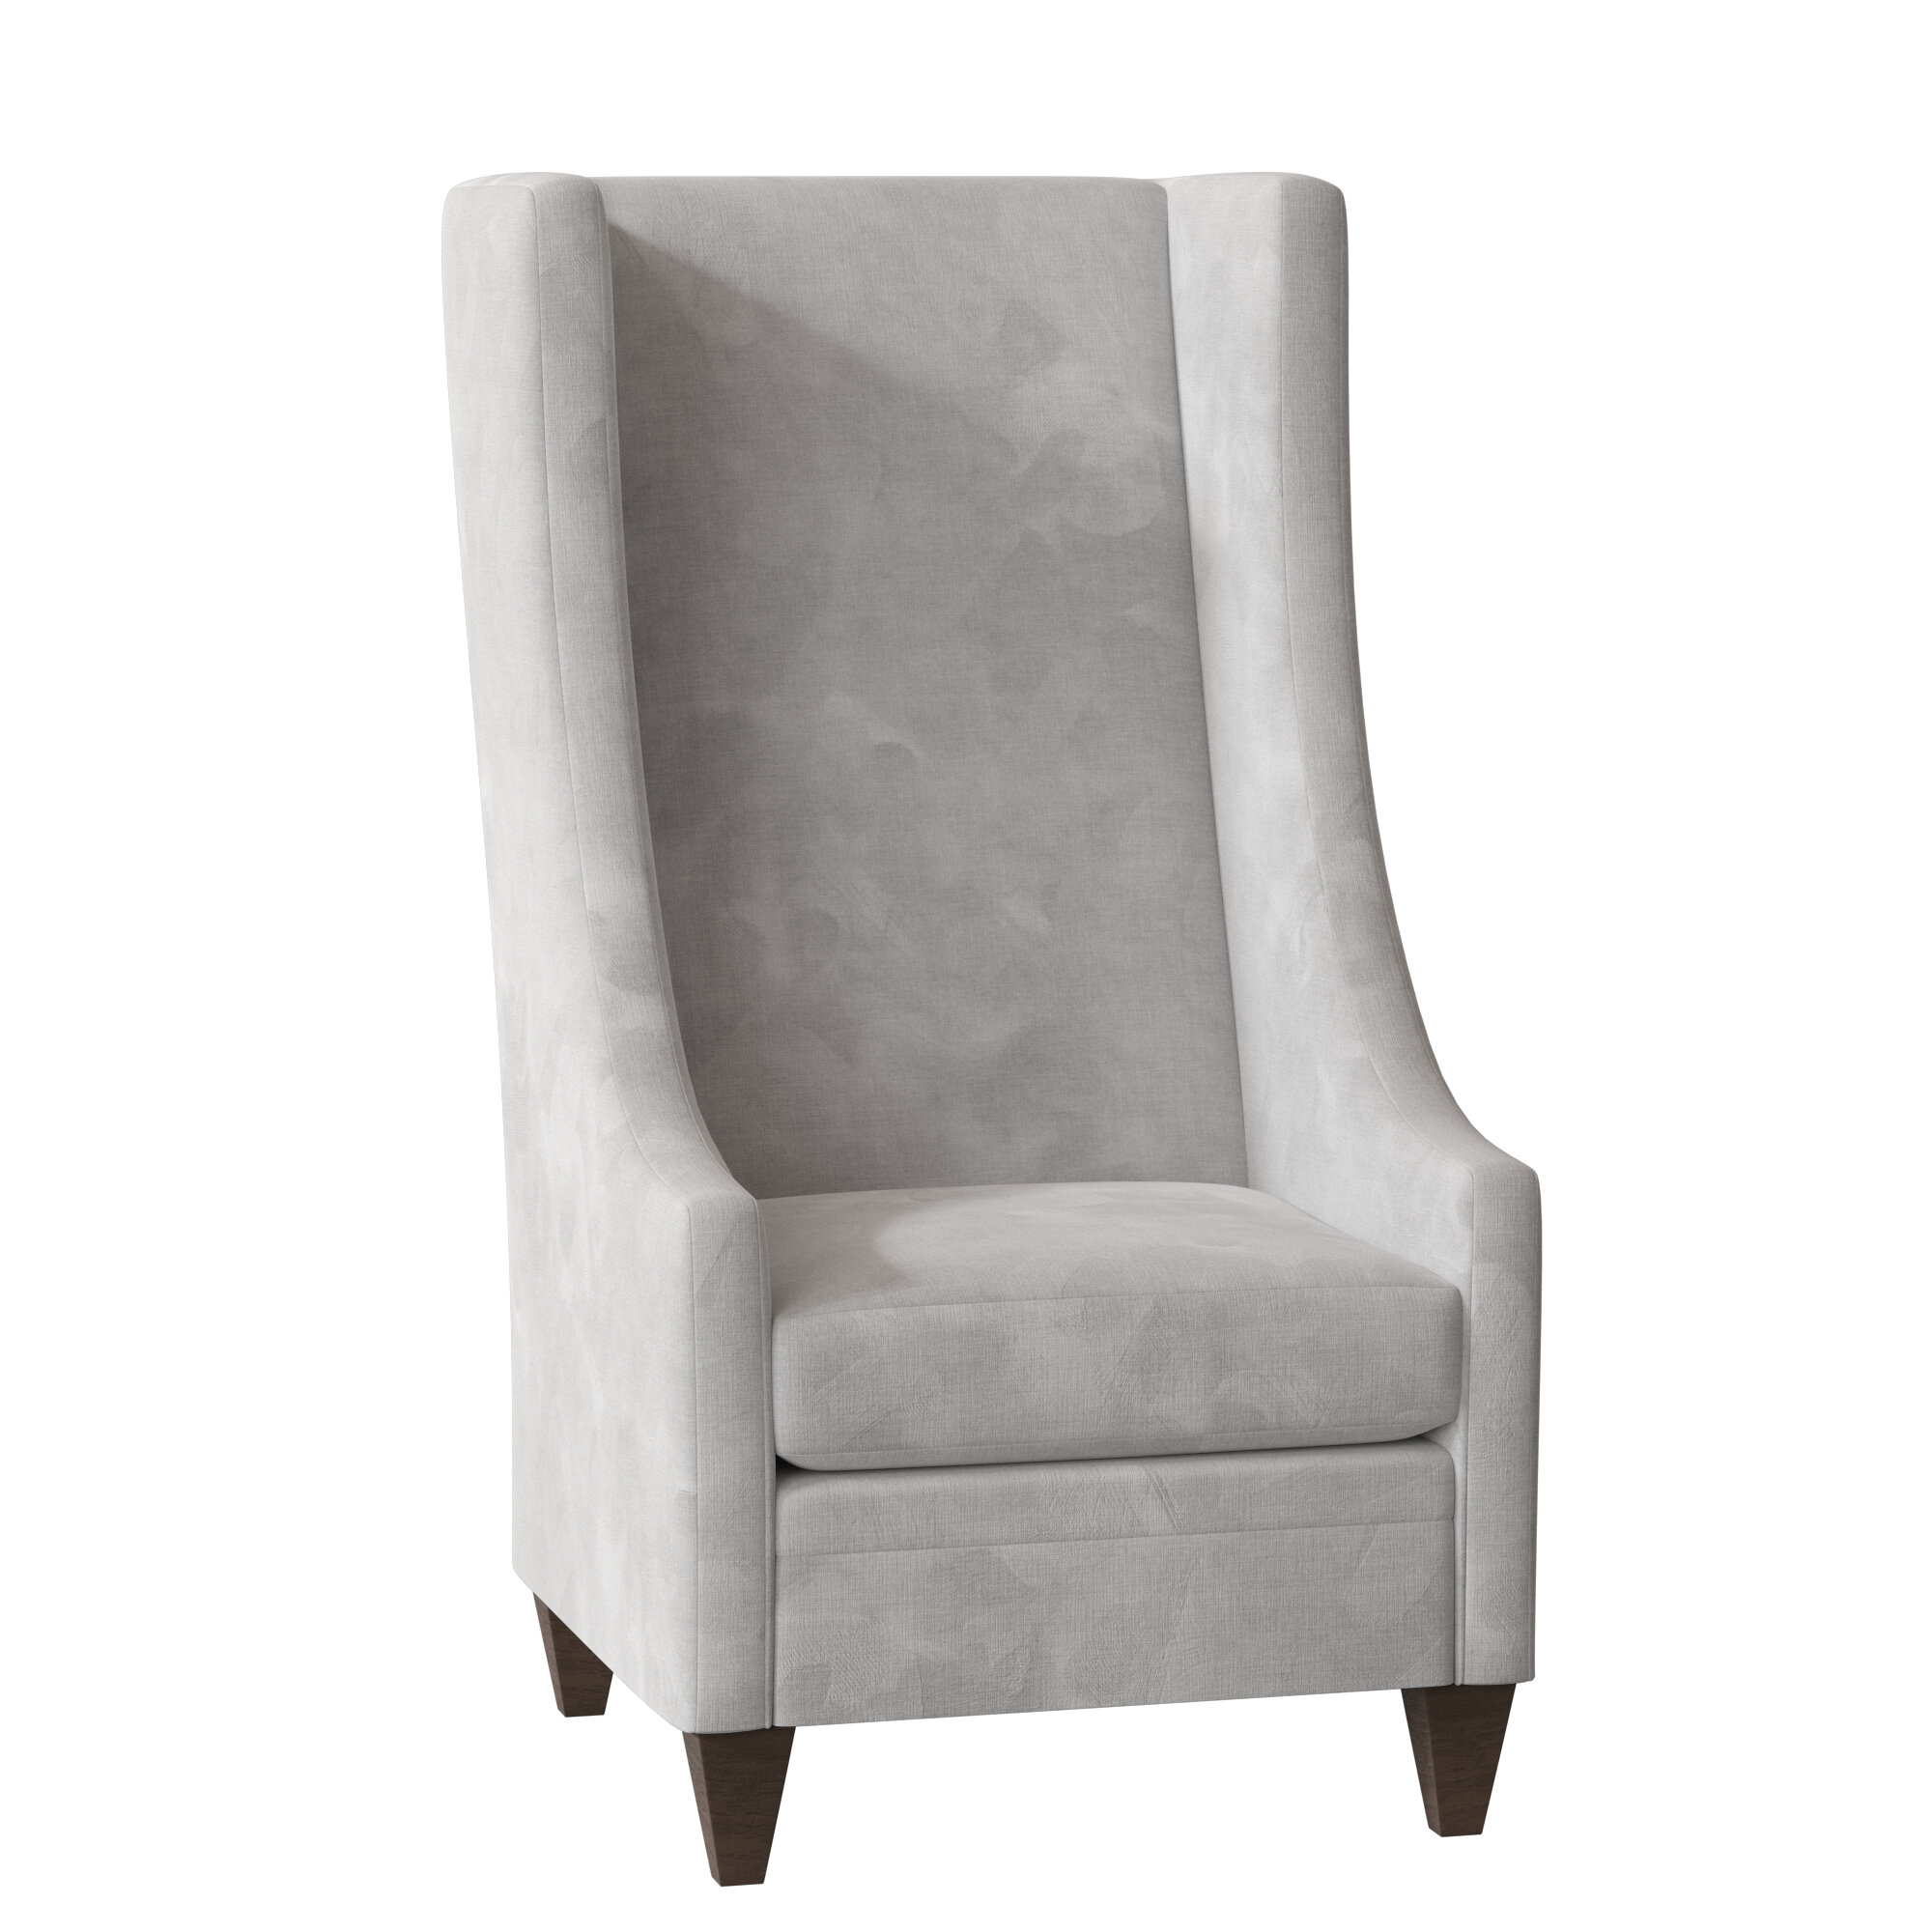 Saige Wingback Chair Within Saige Wingback Chairs (View 2 of 15)